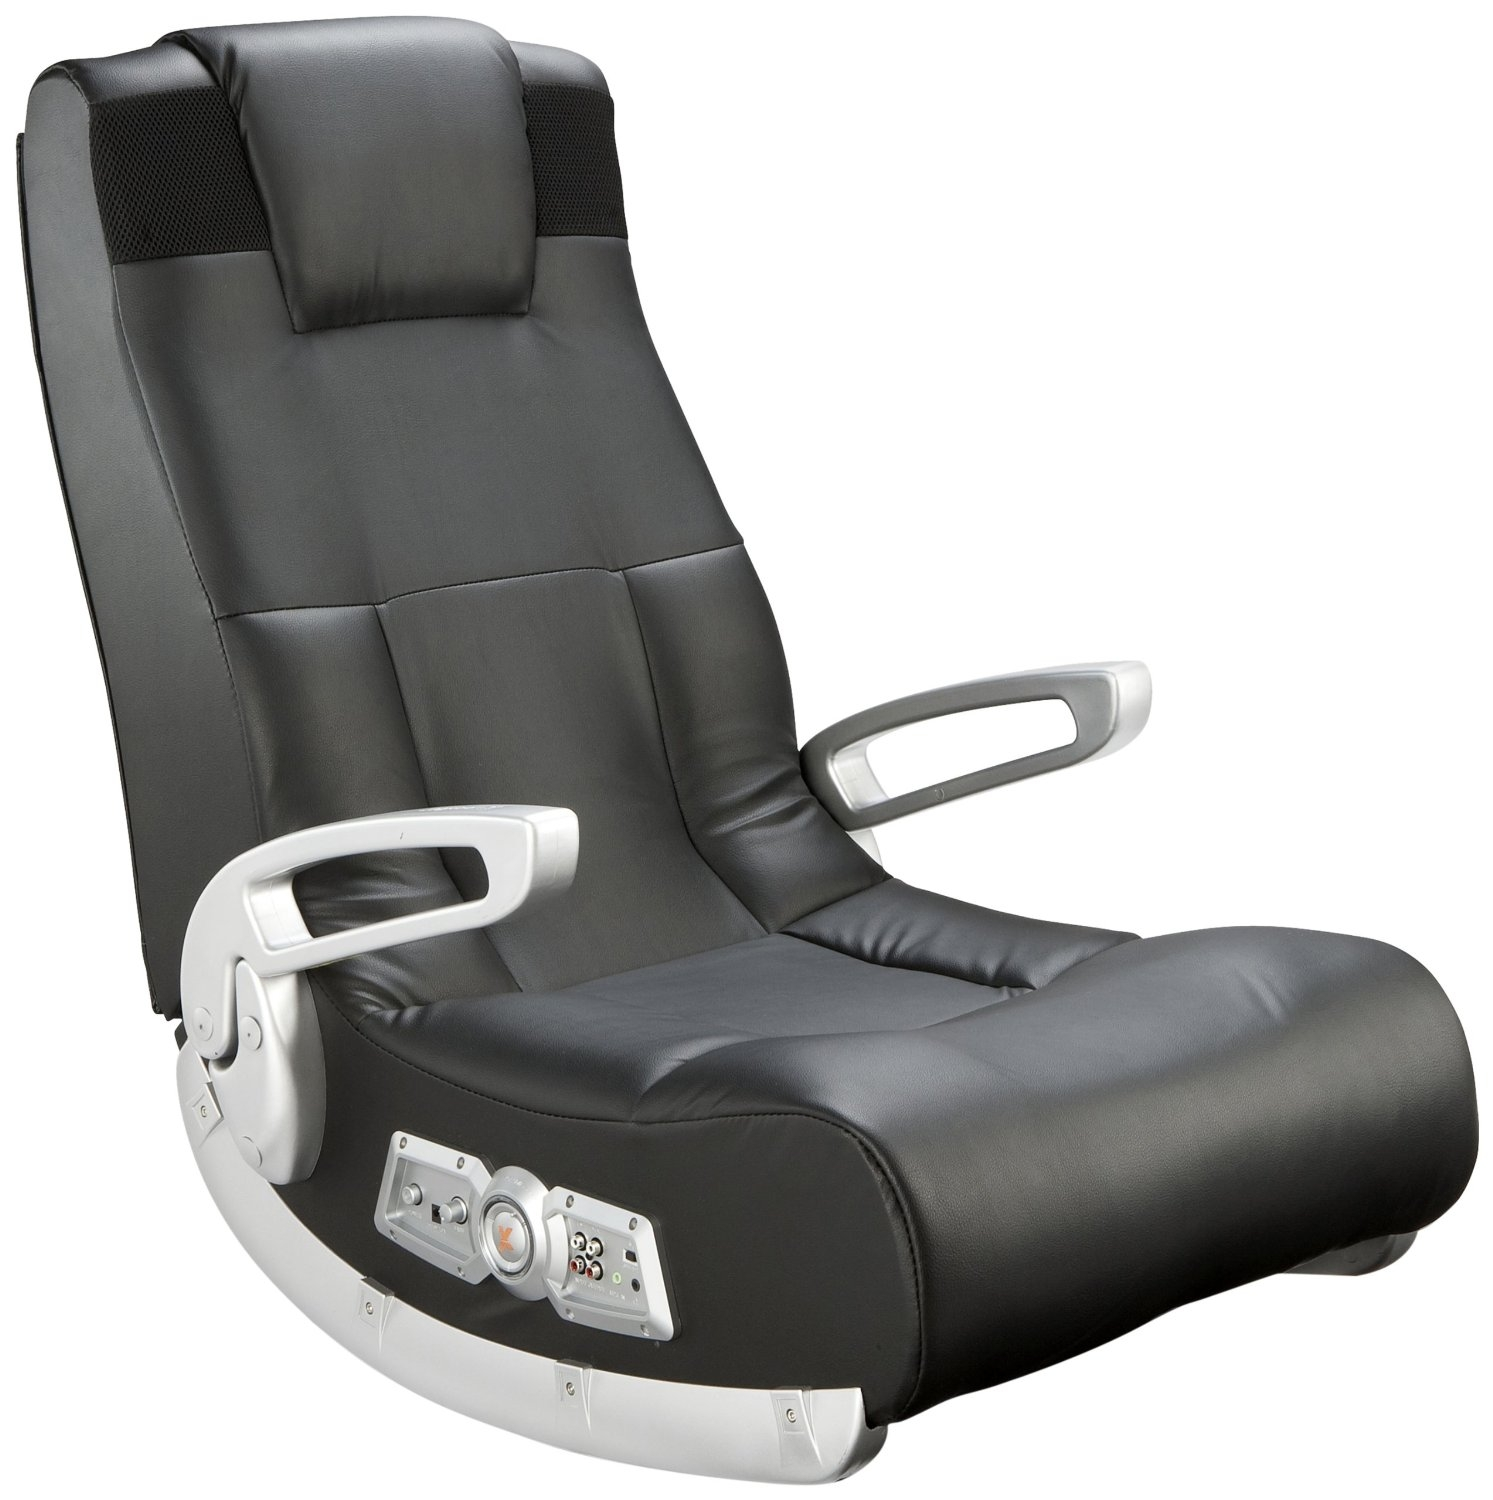 Reviewing The Best Affordable Chairs For Gaming Best Recliners Regarding Gaming Sofa Chairs (Image 13 of 15)